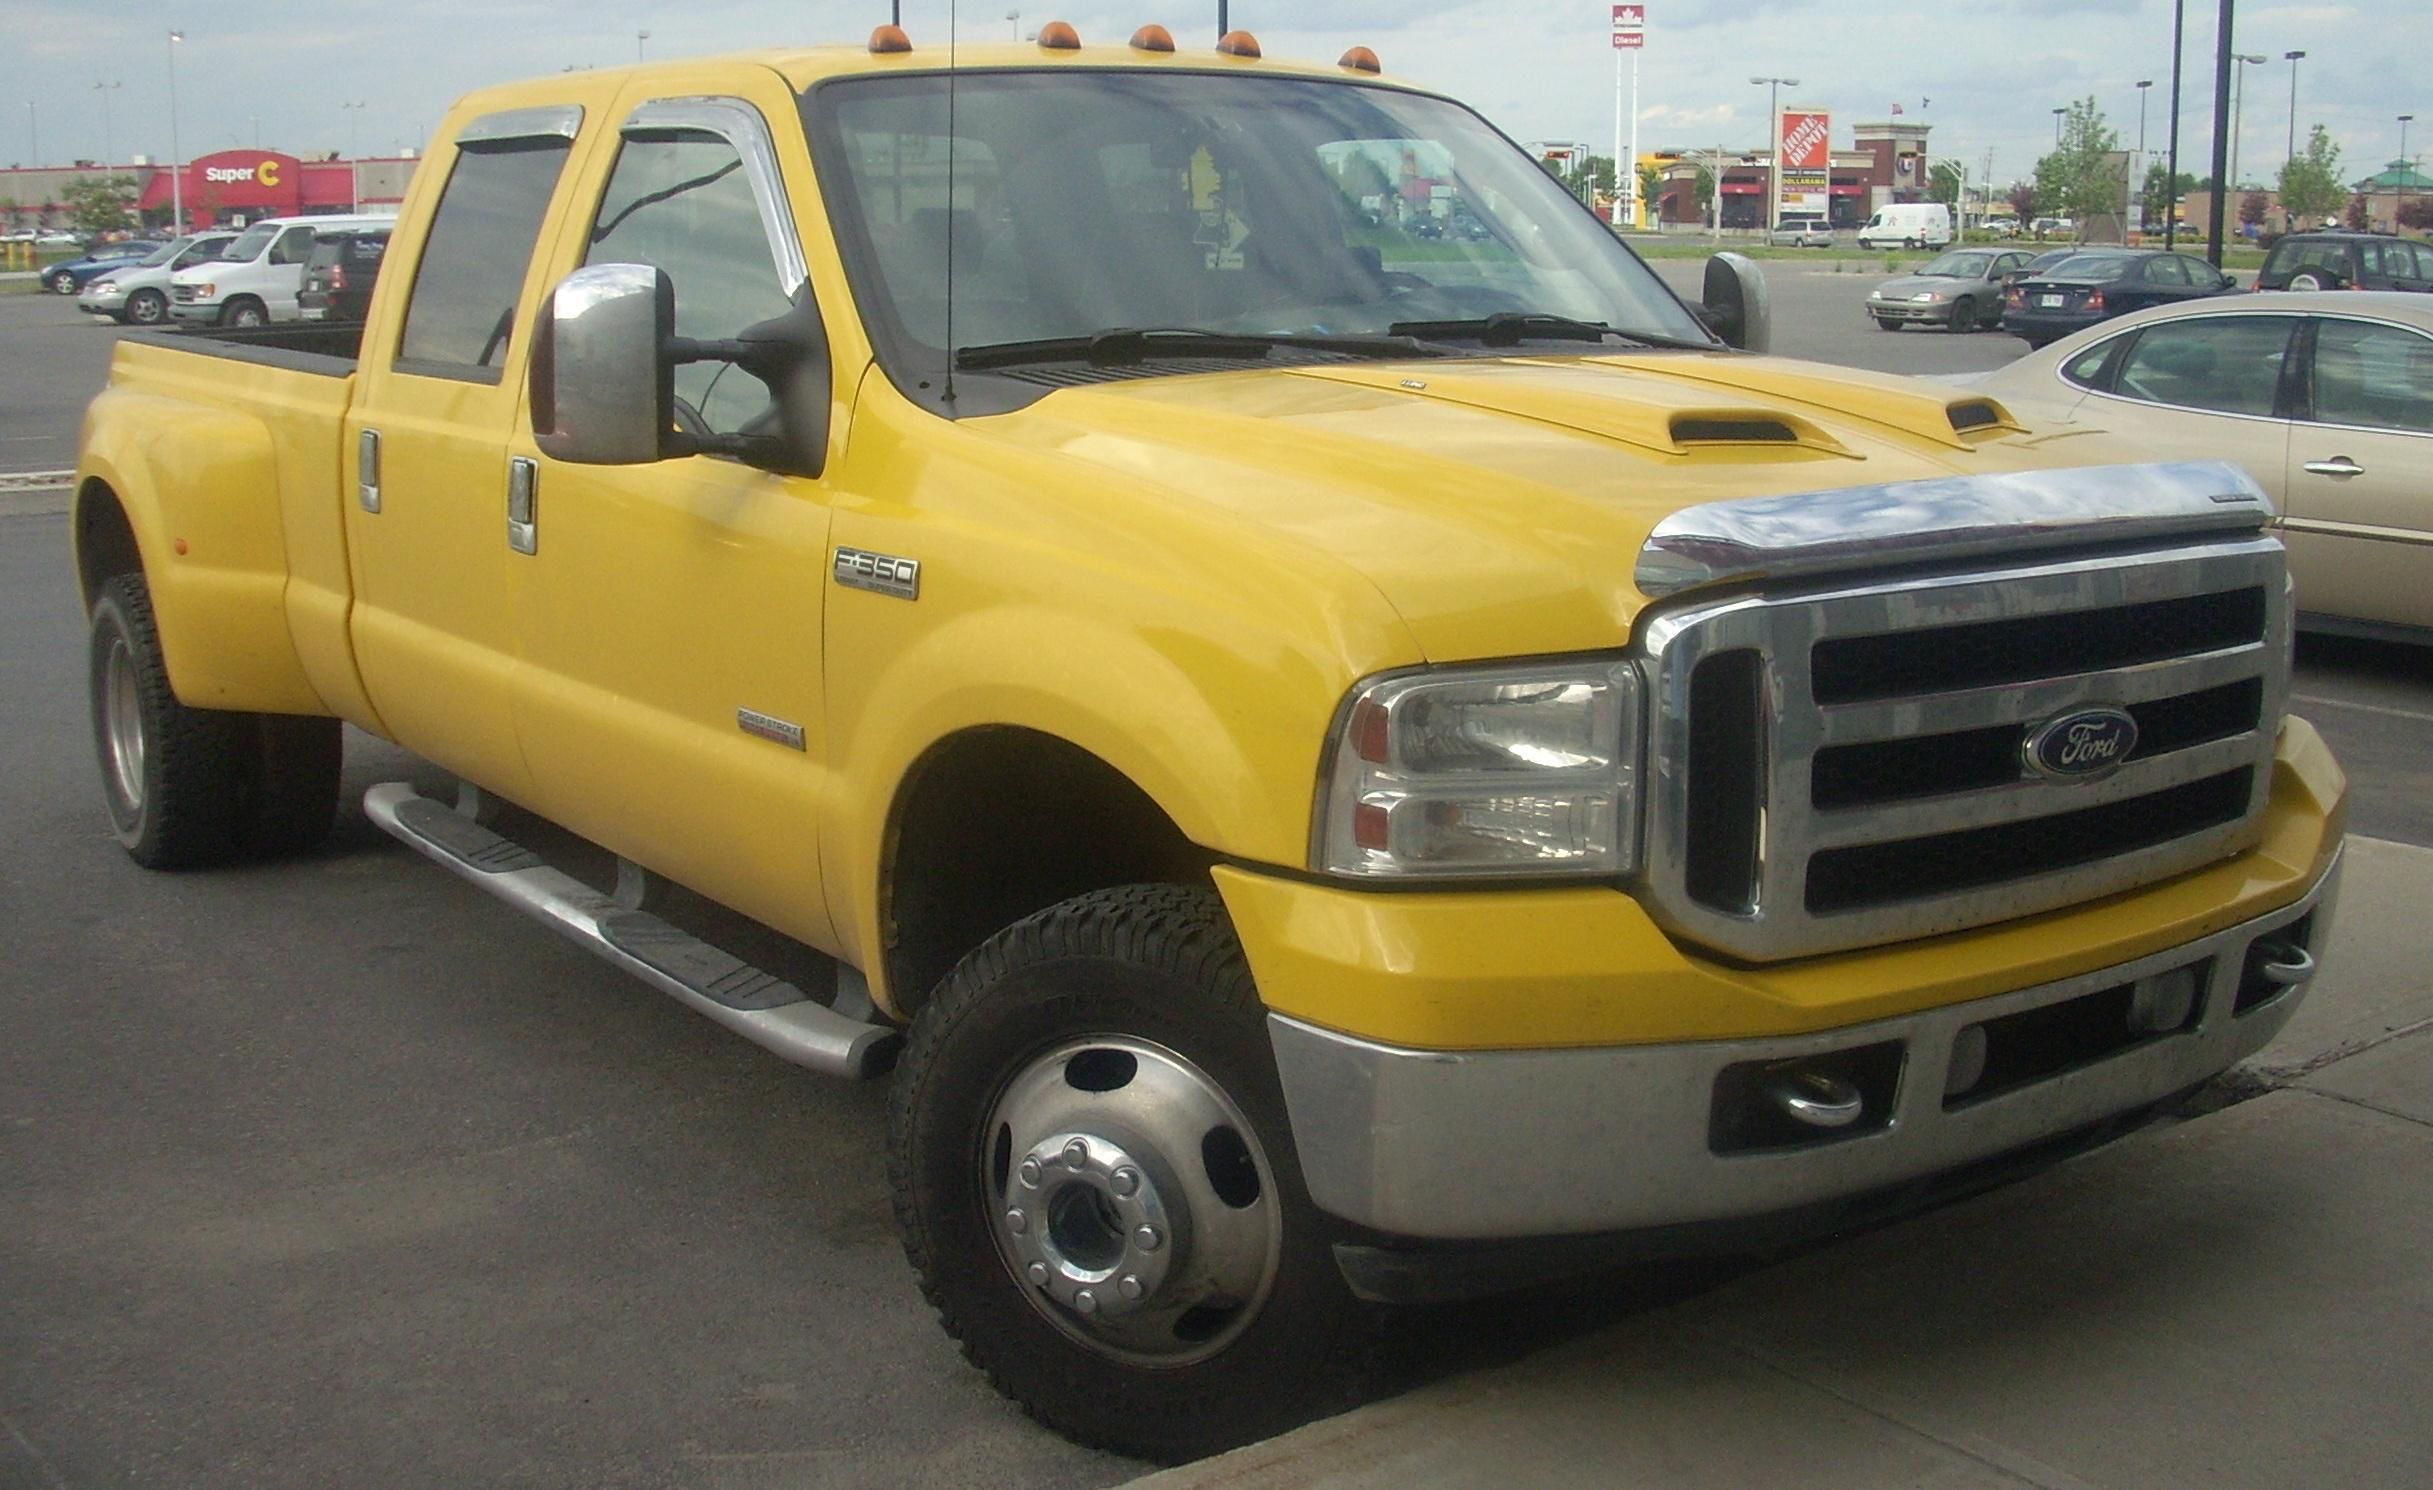 %2705 %2707_Ford_F 350_Super_Duty_Crew_Cab file '05 '07 ford f 350 super duty crew cab jpg wikimedia commons Ford F-350 Trailer Wiring Diagram at n-0.co